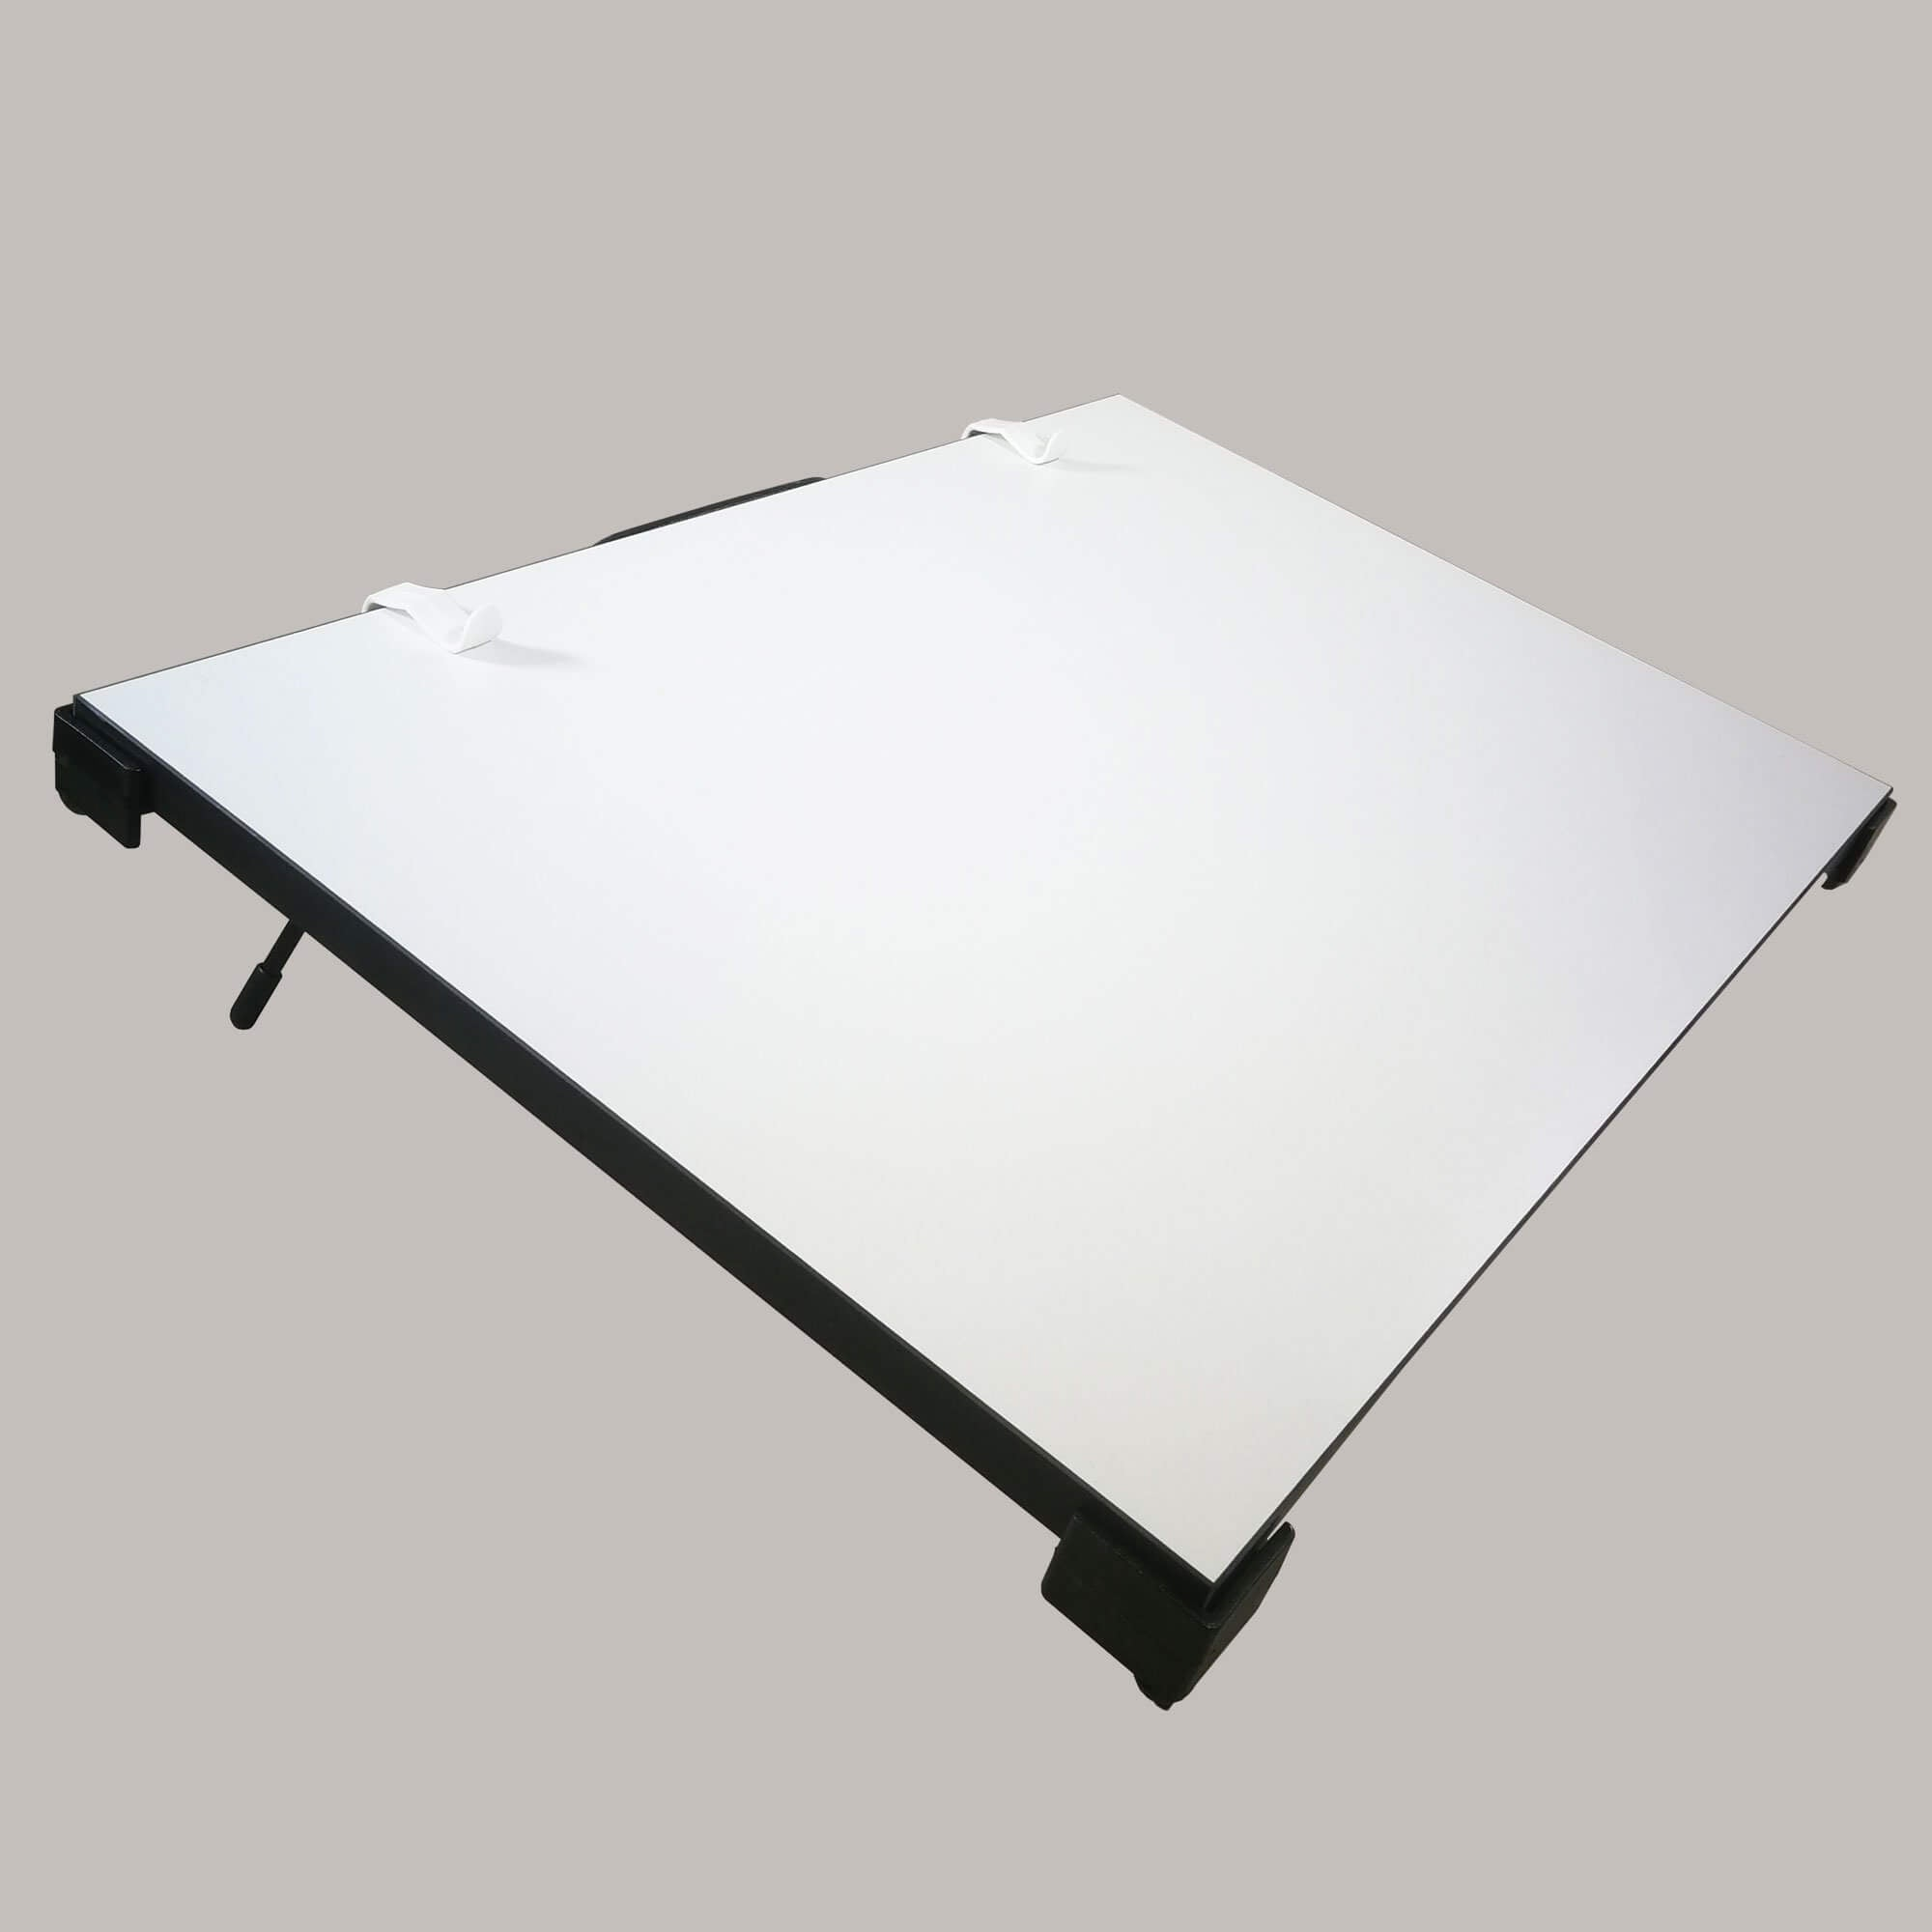 ARTdiscount ISOmars Student Drawing Board Desk & Stand